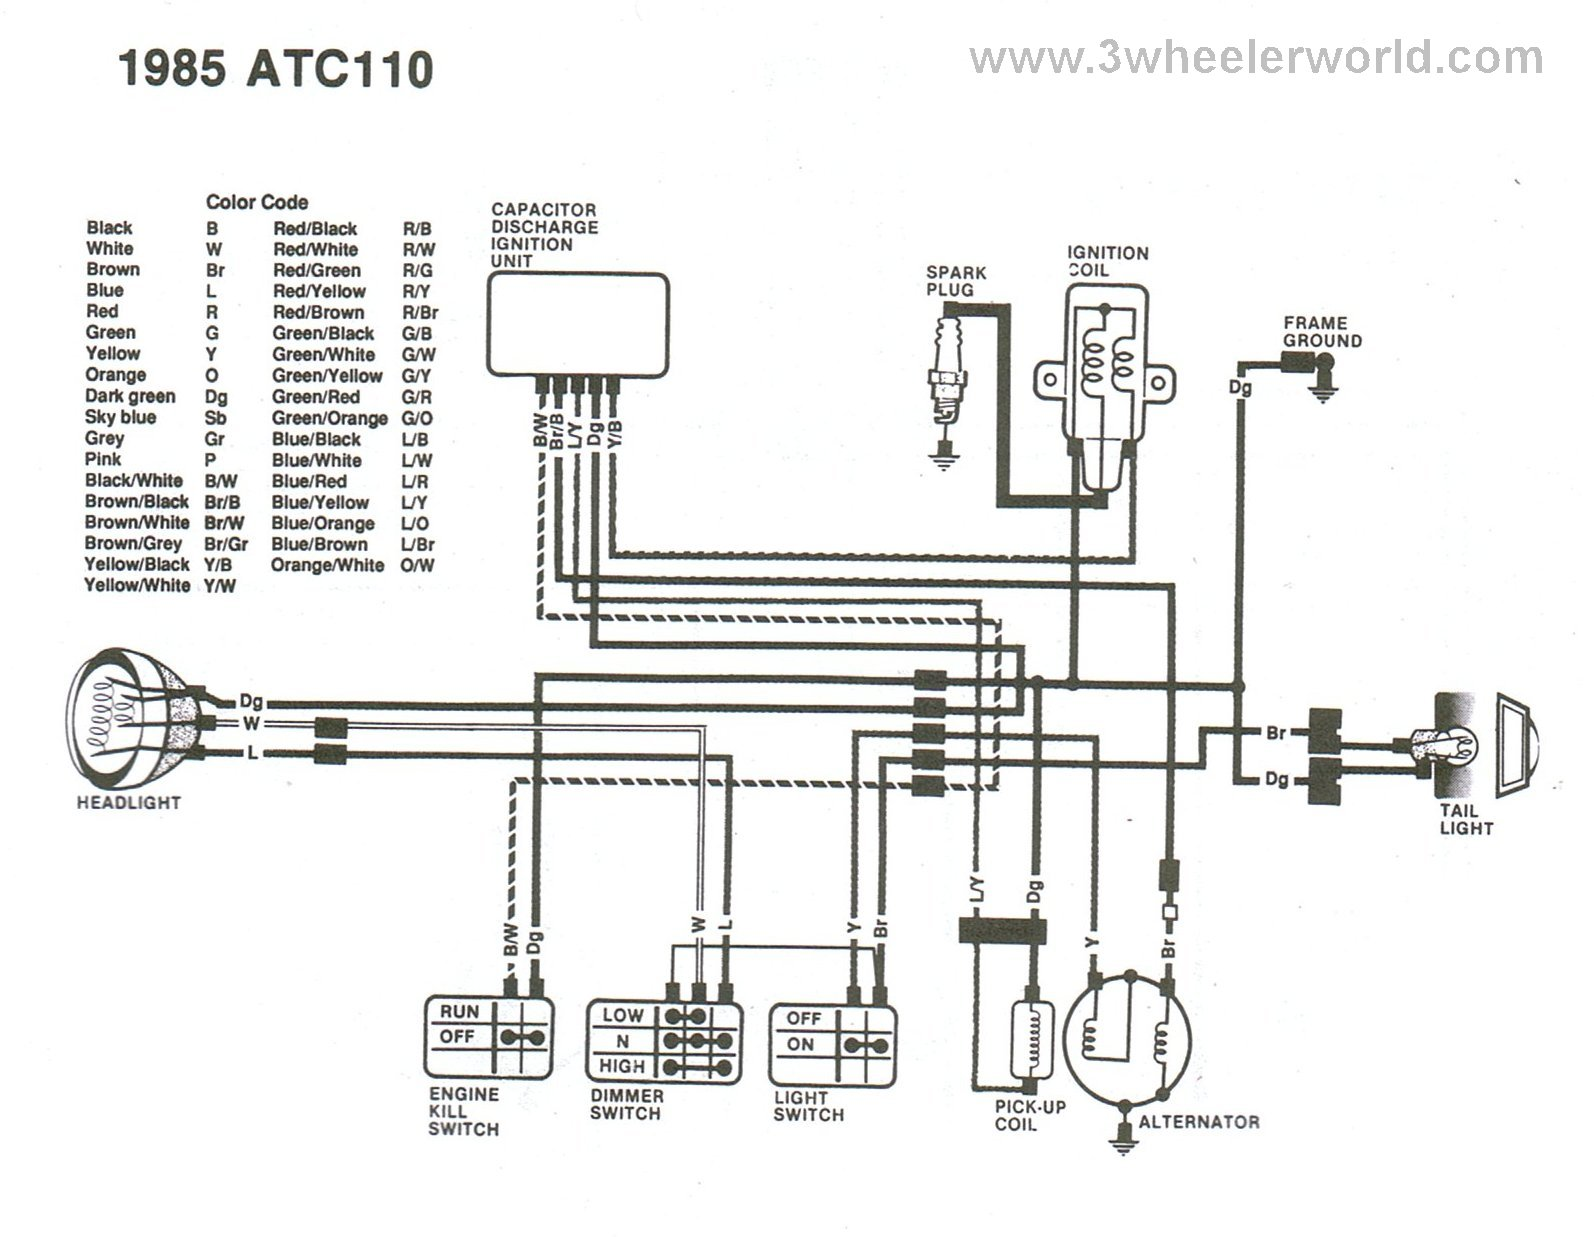 ATC110x85 3 wheeler world tech help honda wiring diagrams honda xrm 110 engine wiring diagram at readyjetset.co